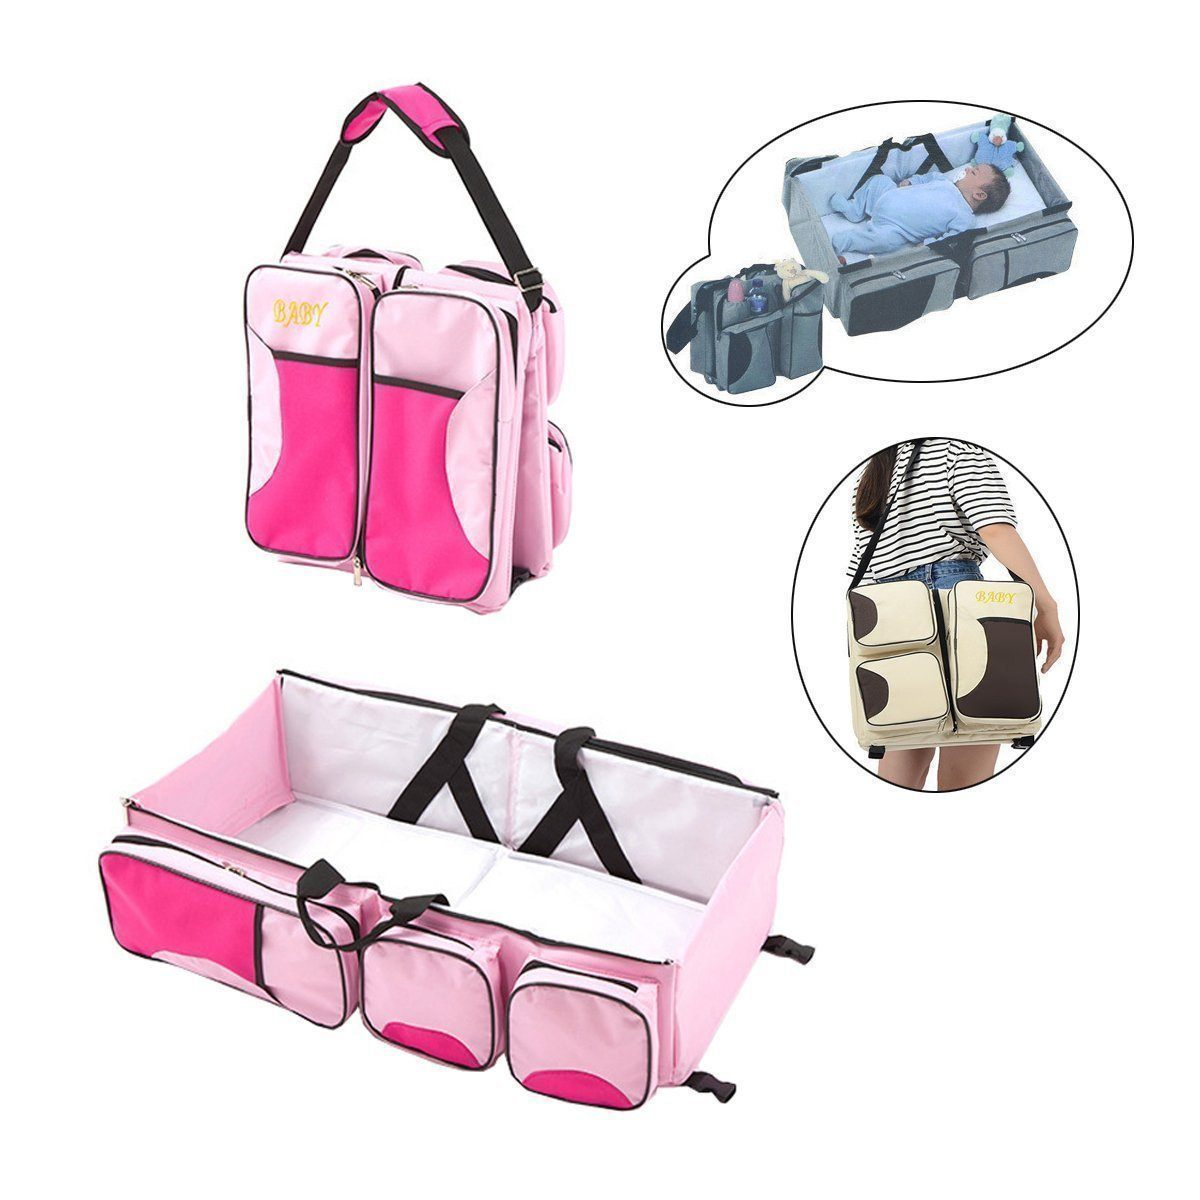 3 In 1 Premium Portable Diaper Bag Crib